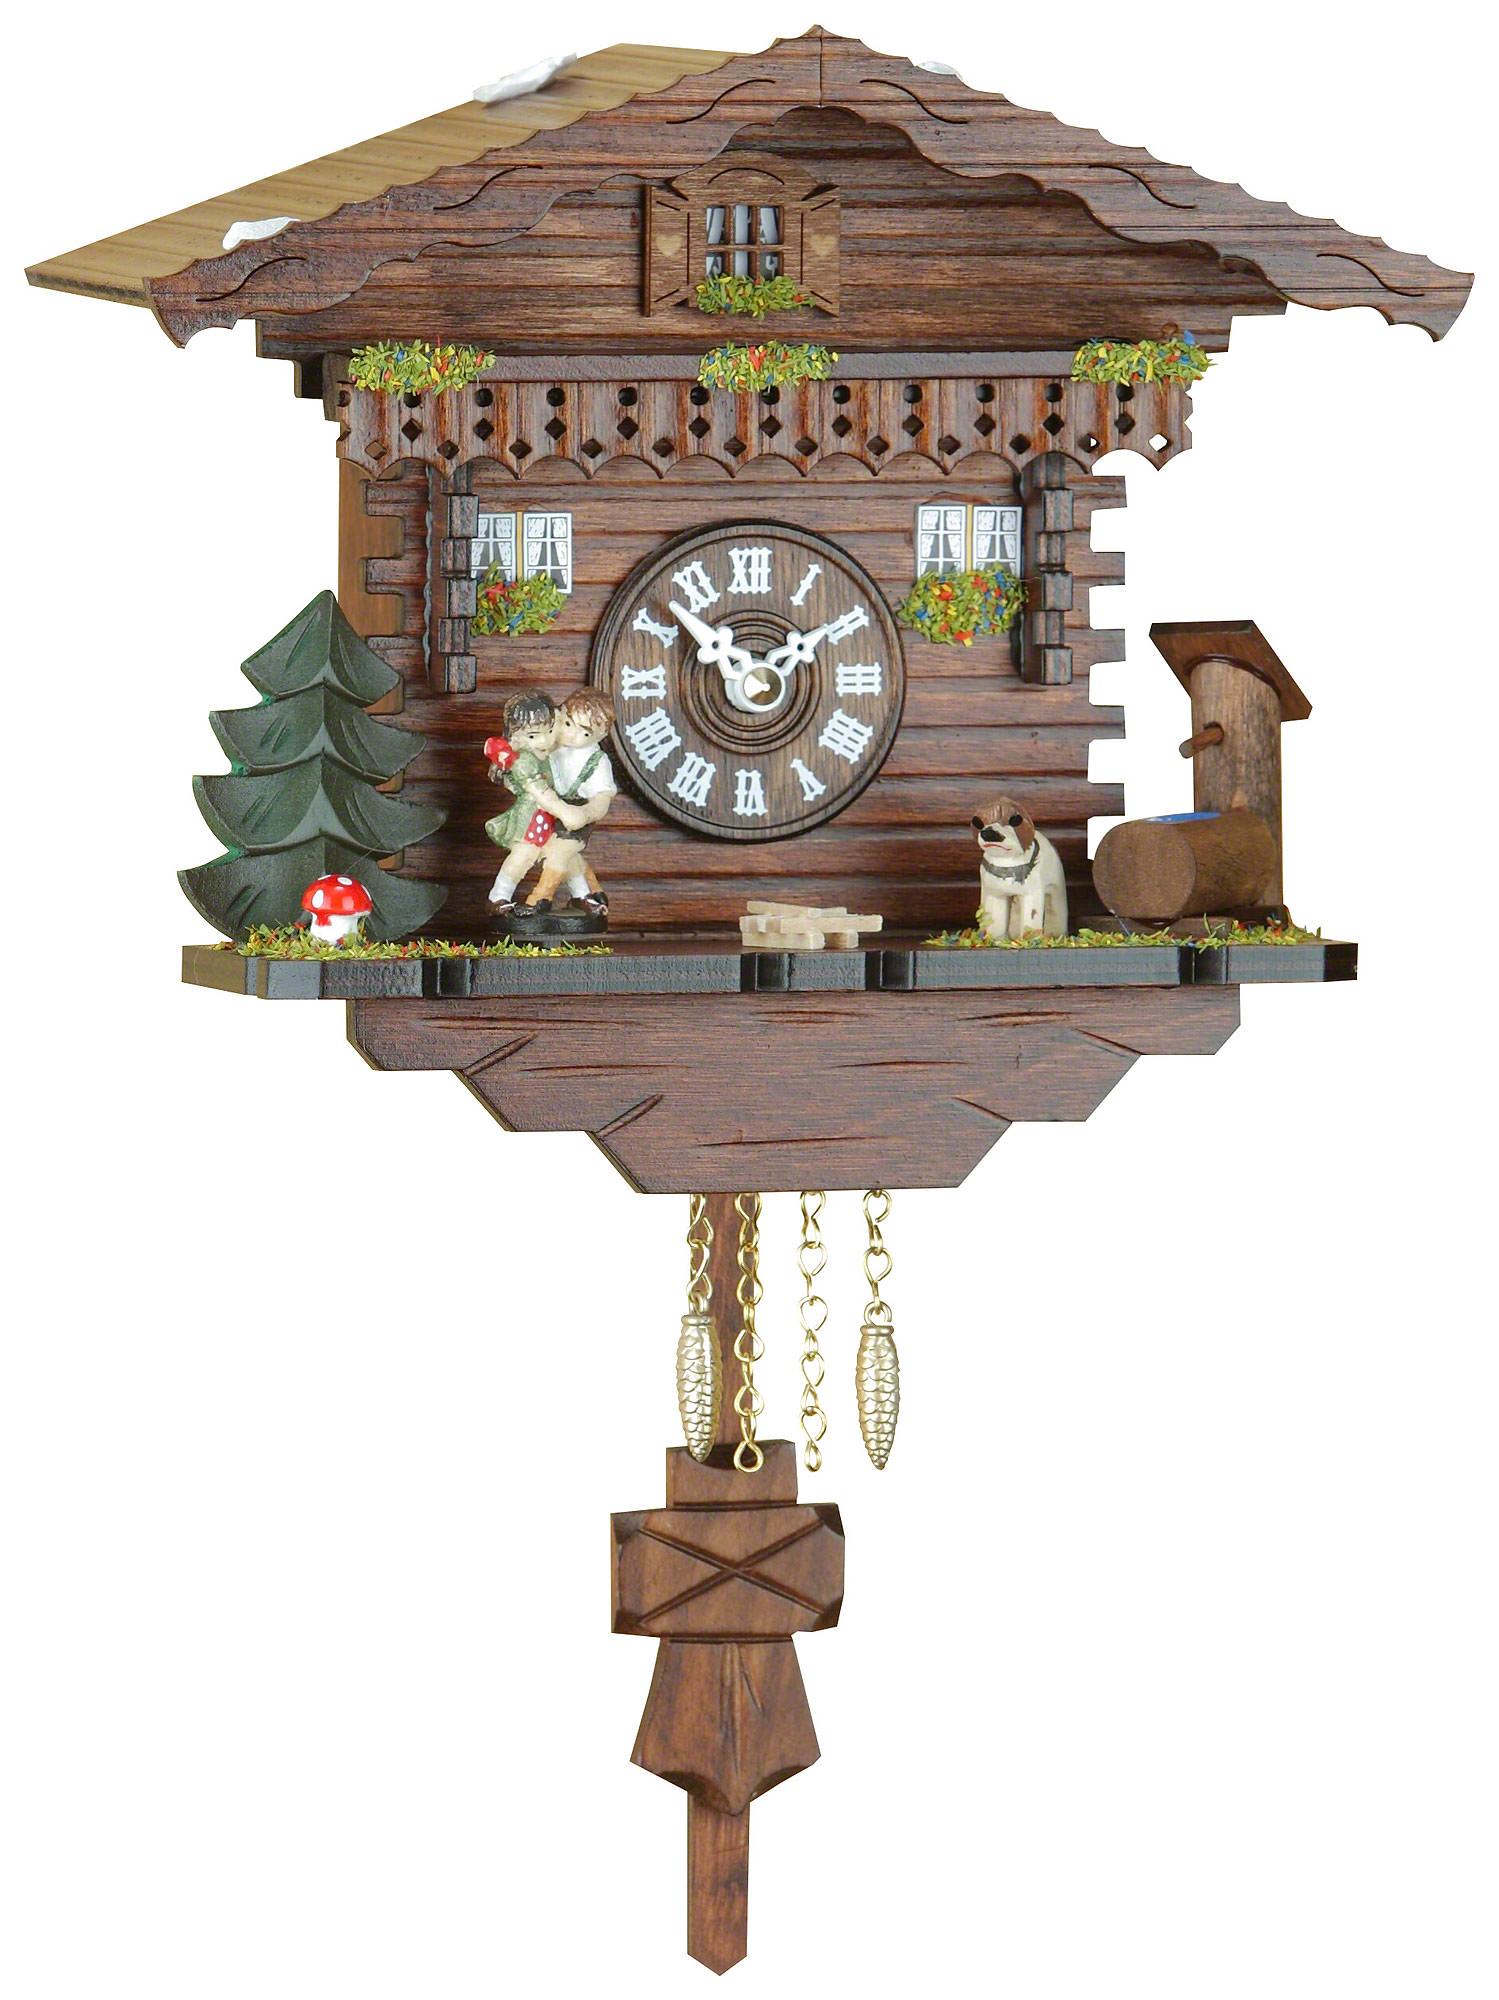 Black forest pendulum clock quartz movement 18cm by trenkle uhren 256 pq - Cuckoo clock pendulum ...